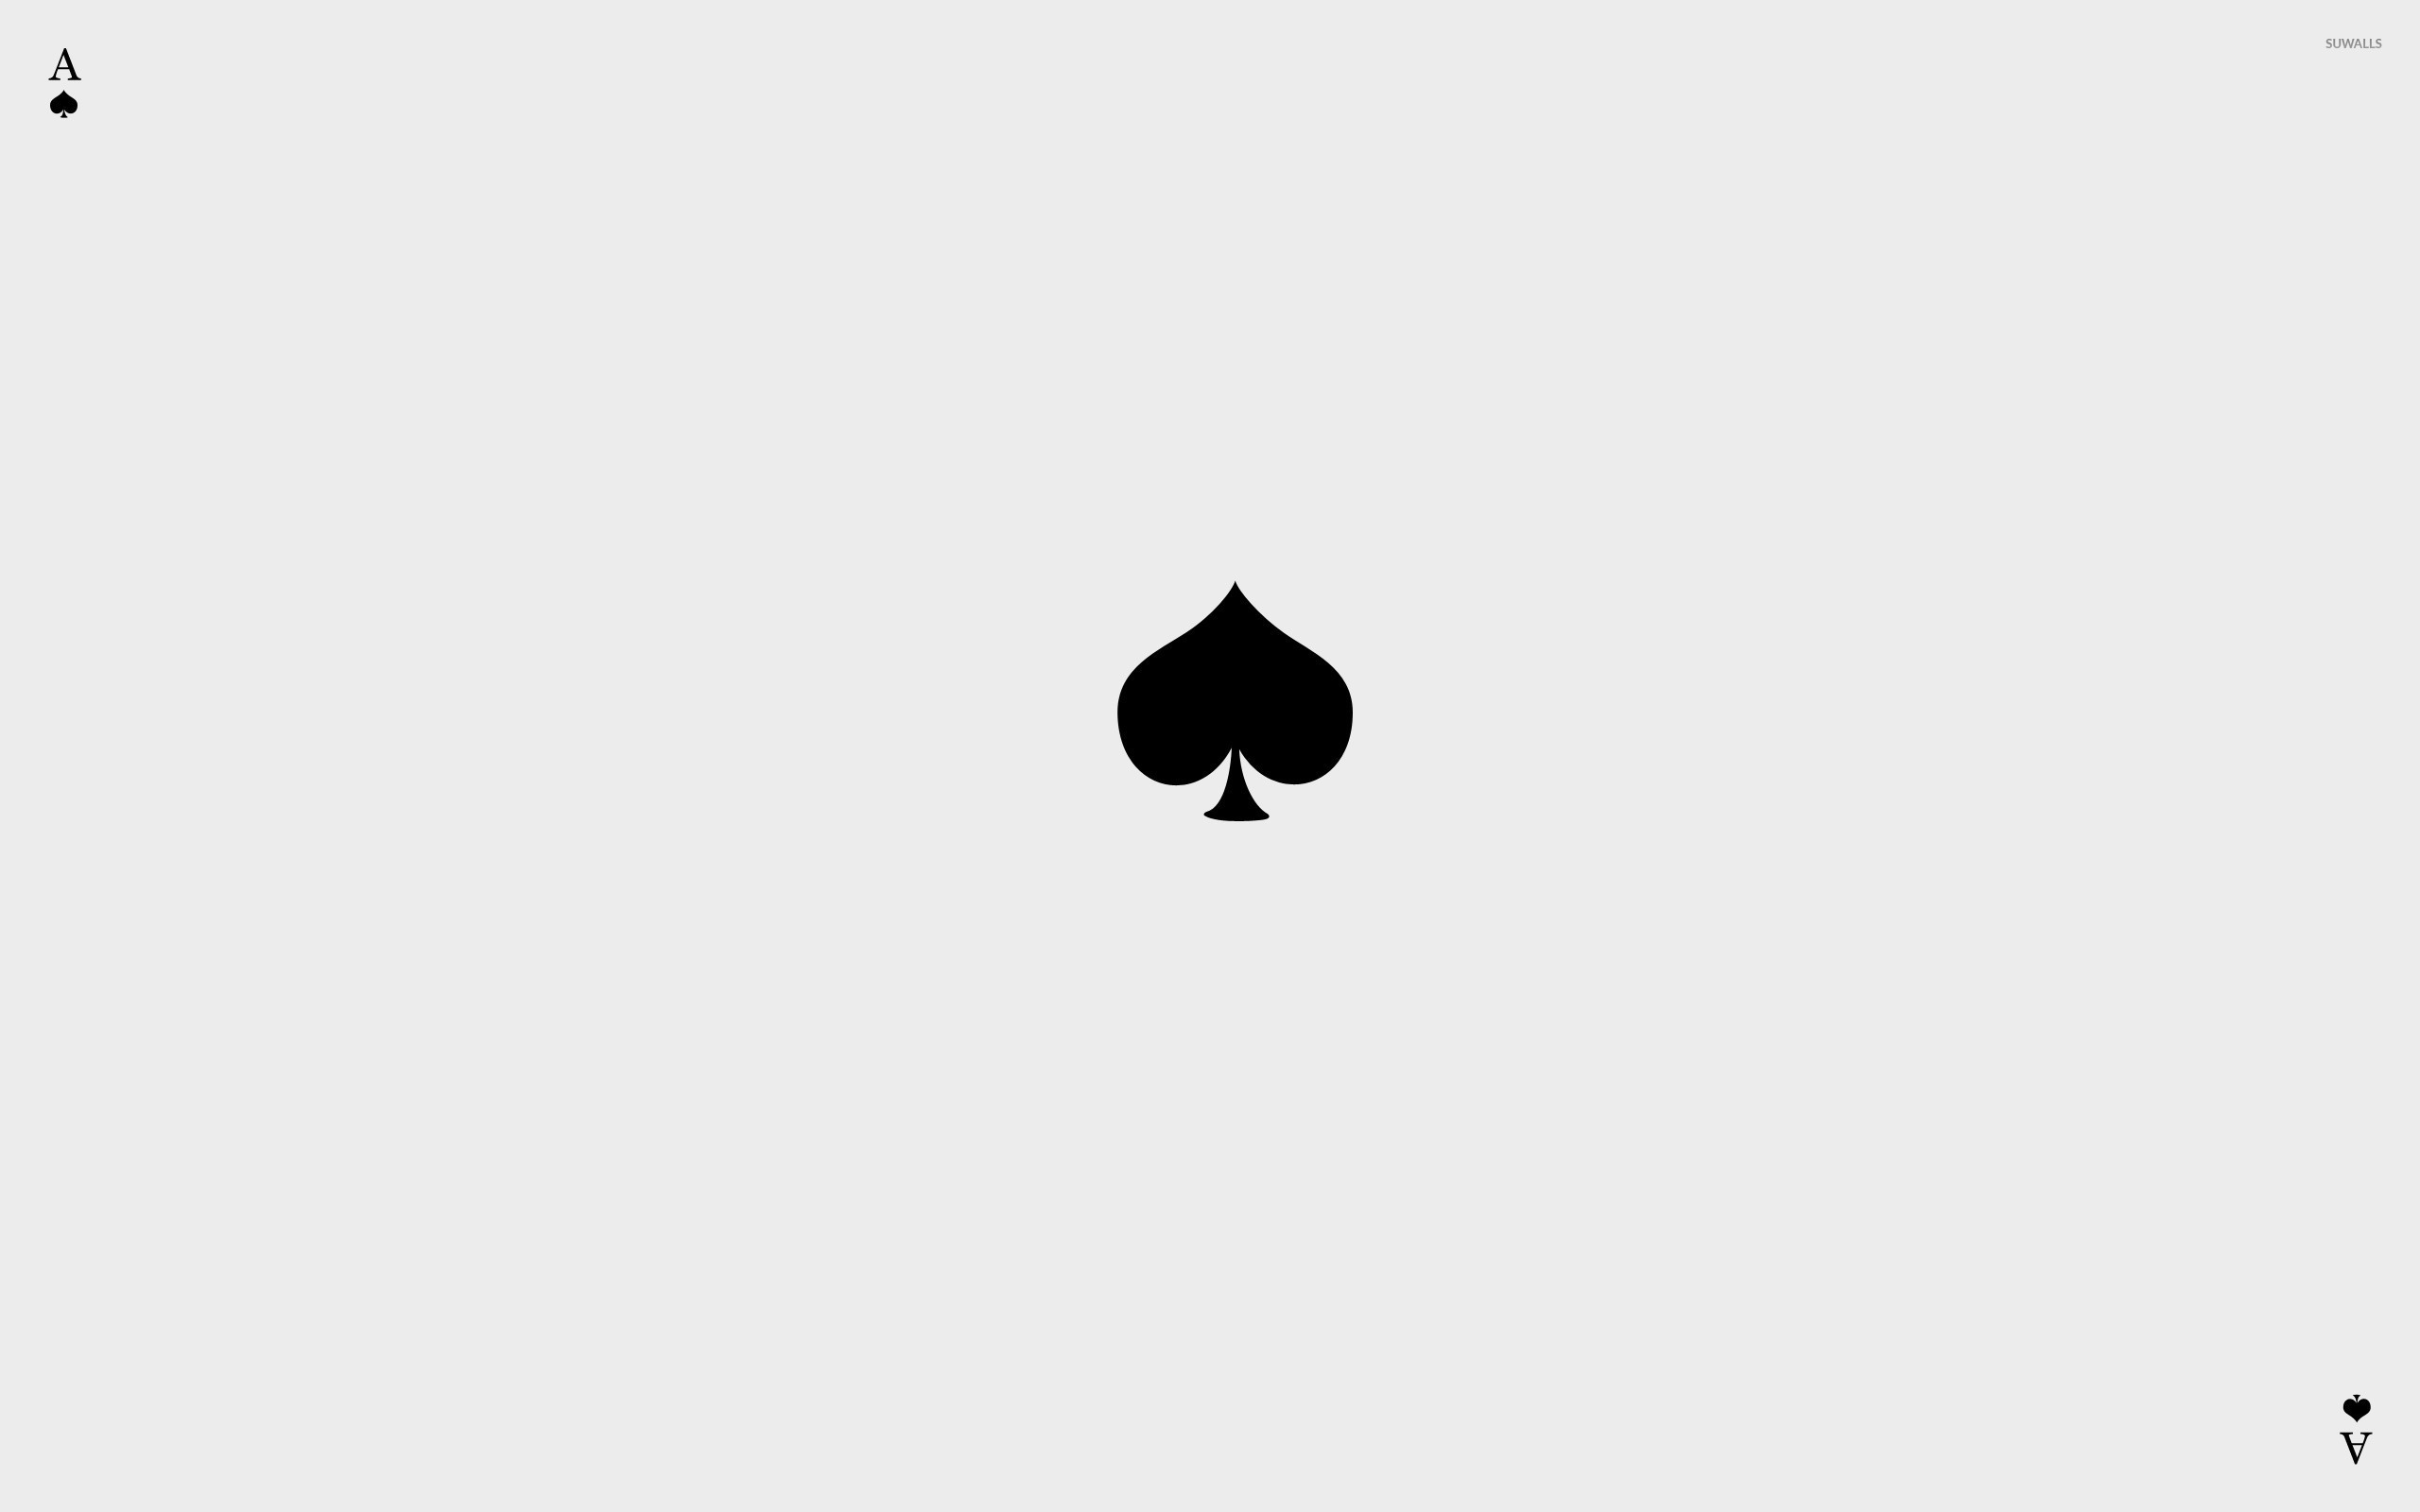 Ace of spades wallpaper minimalistic wallpapers 43116 ace of spades wallpaper voltagebd Images